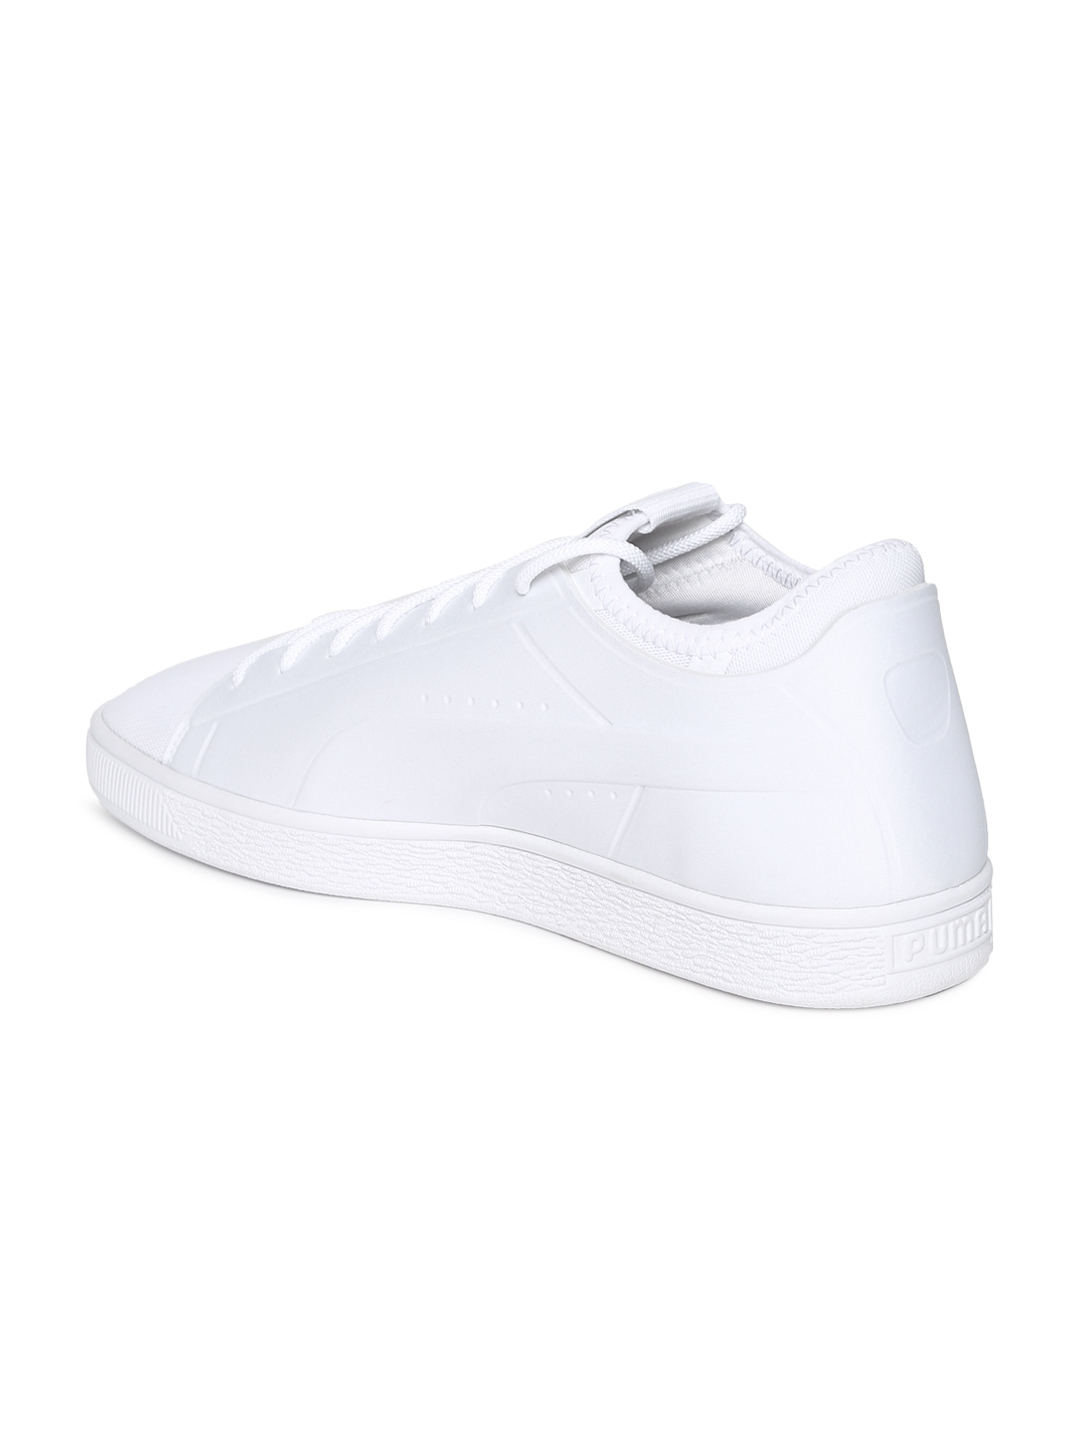 0ab65383e97 Buy Puma Men White Basket Classic Sock Lo Sneakers - Casual Shoes ...